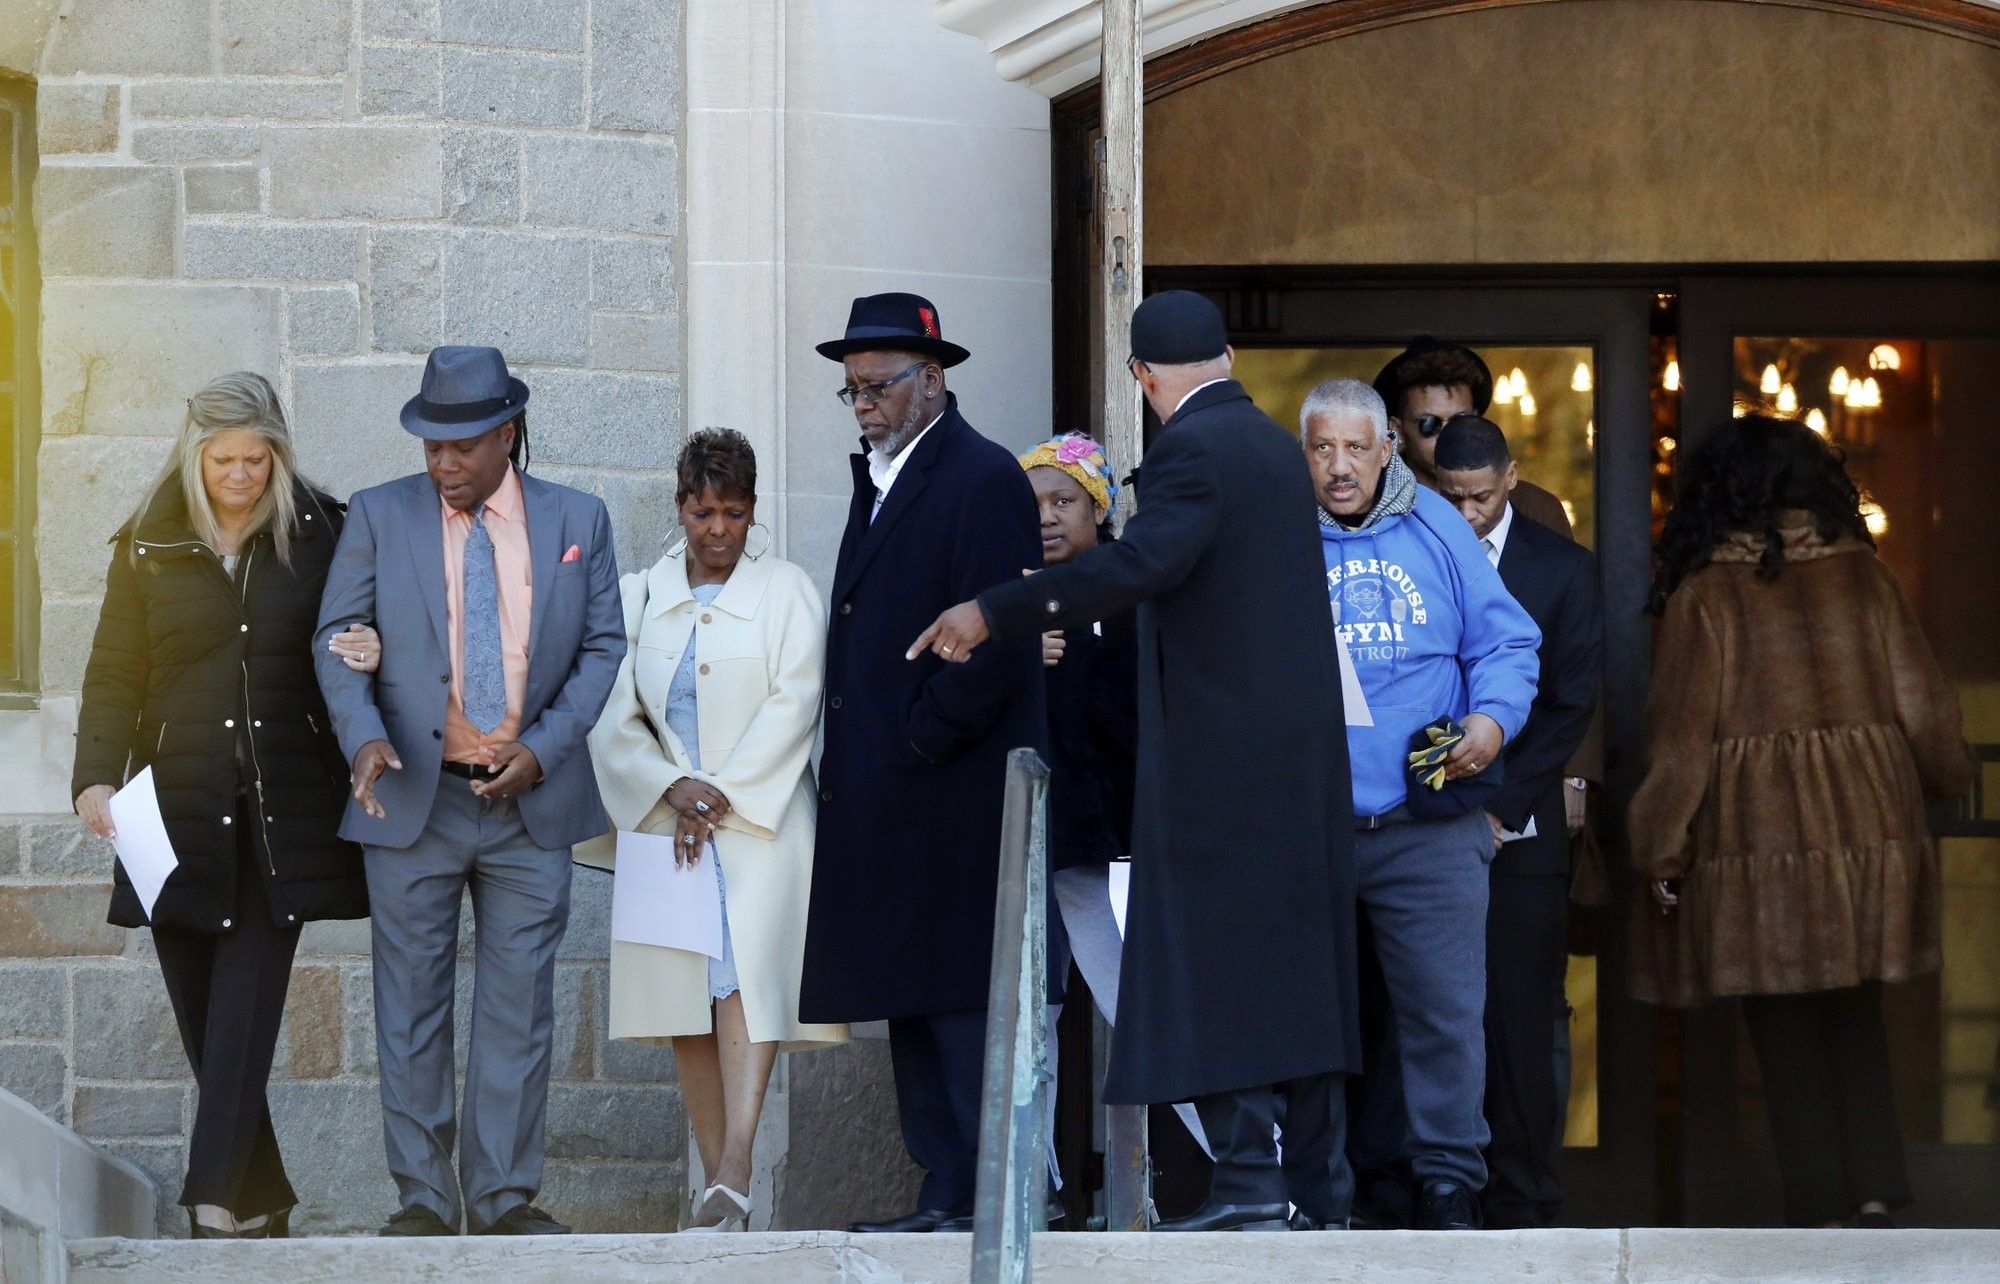 "amily members of the late Aretha Franklin gather before entering the Mausoleum Chapel at the Woodlawn Cemetery, Monday, March 25, 2019, in Detroit. Family celebrated Franklin and other passed family members with a memorial service inside a chapel at the cemetery on what would have been the Queen of Soul's 77th birthday. Franklin died last year after battling pancreatic cancer. Sabrina Owens, Franklin's niece, says ""our family thought it might be a good idea for us to start the day the right way _ in prayer."" (AP Photo/Carlos Osorio)"